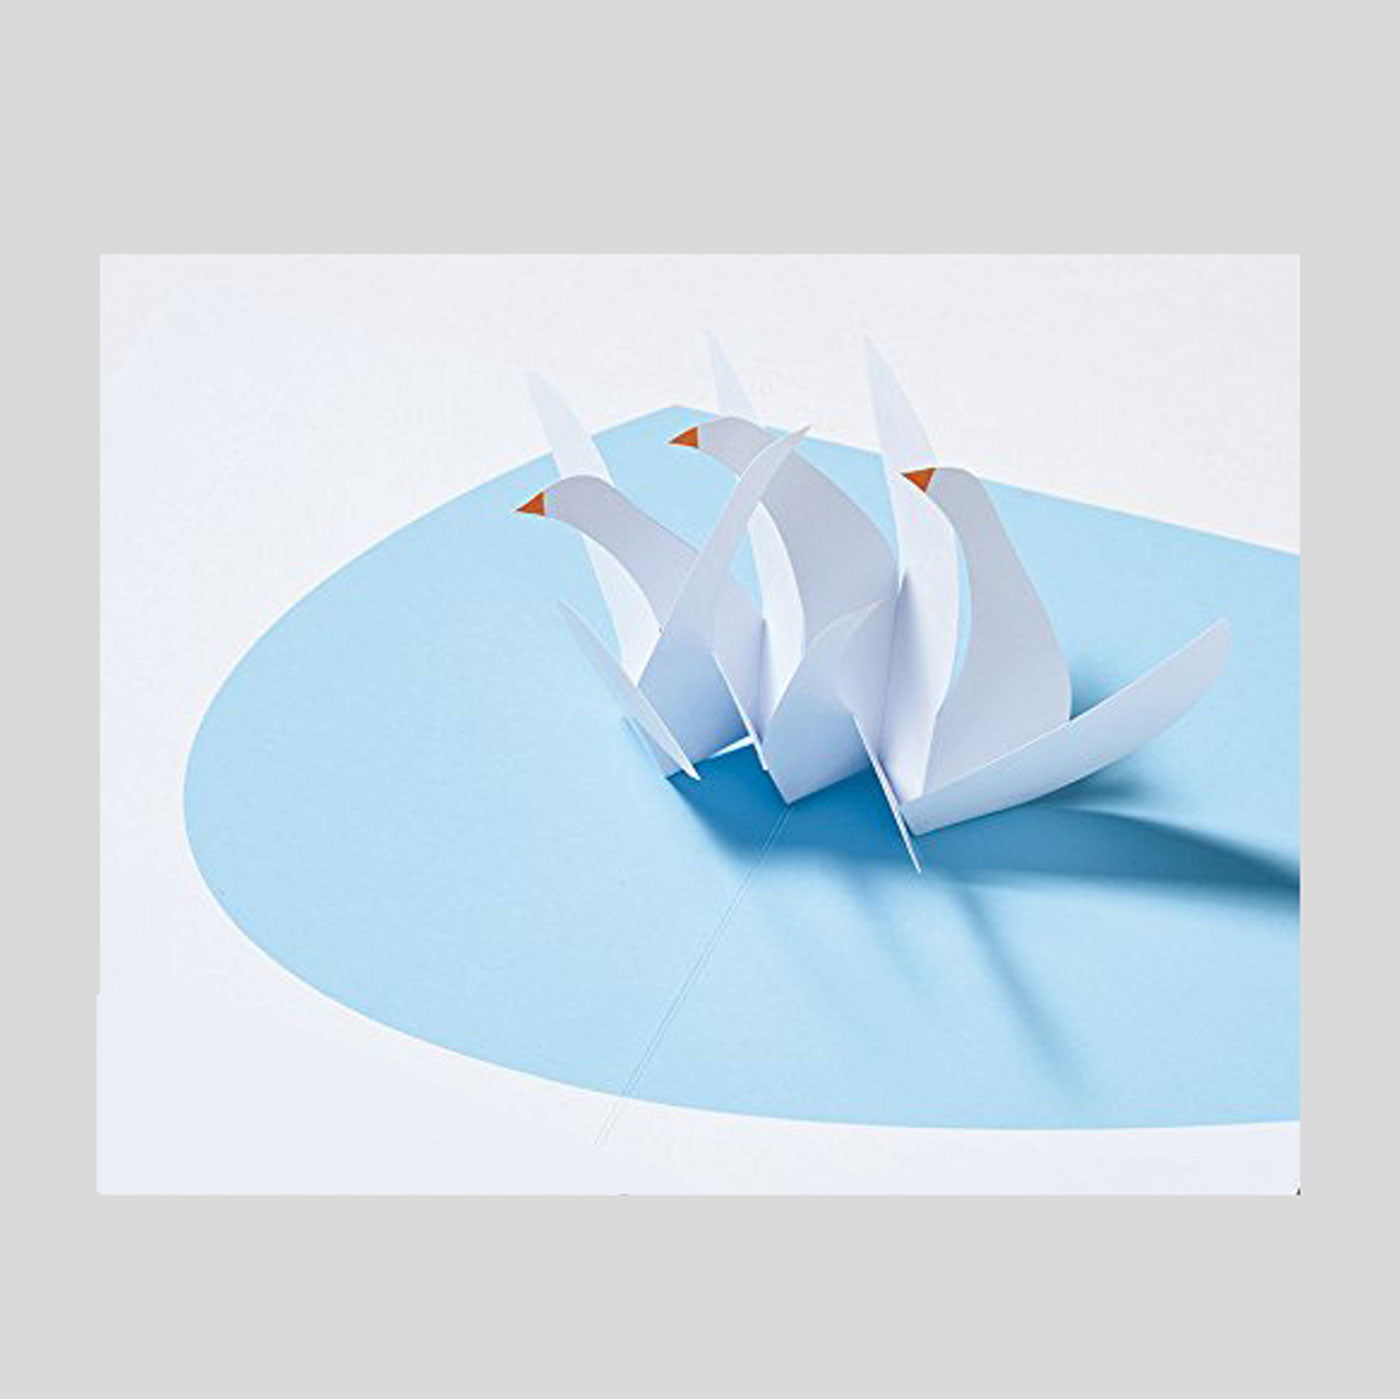 More Designs of Paper Folding For POP-UP.